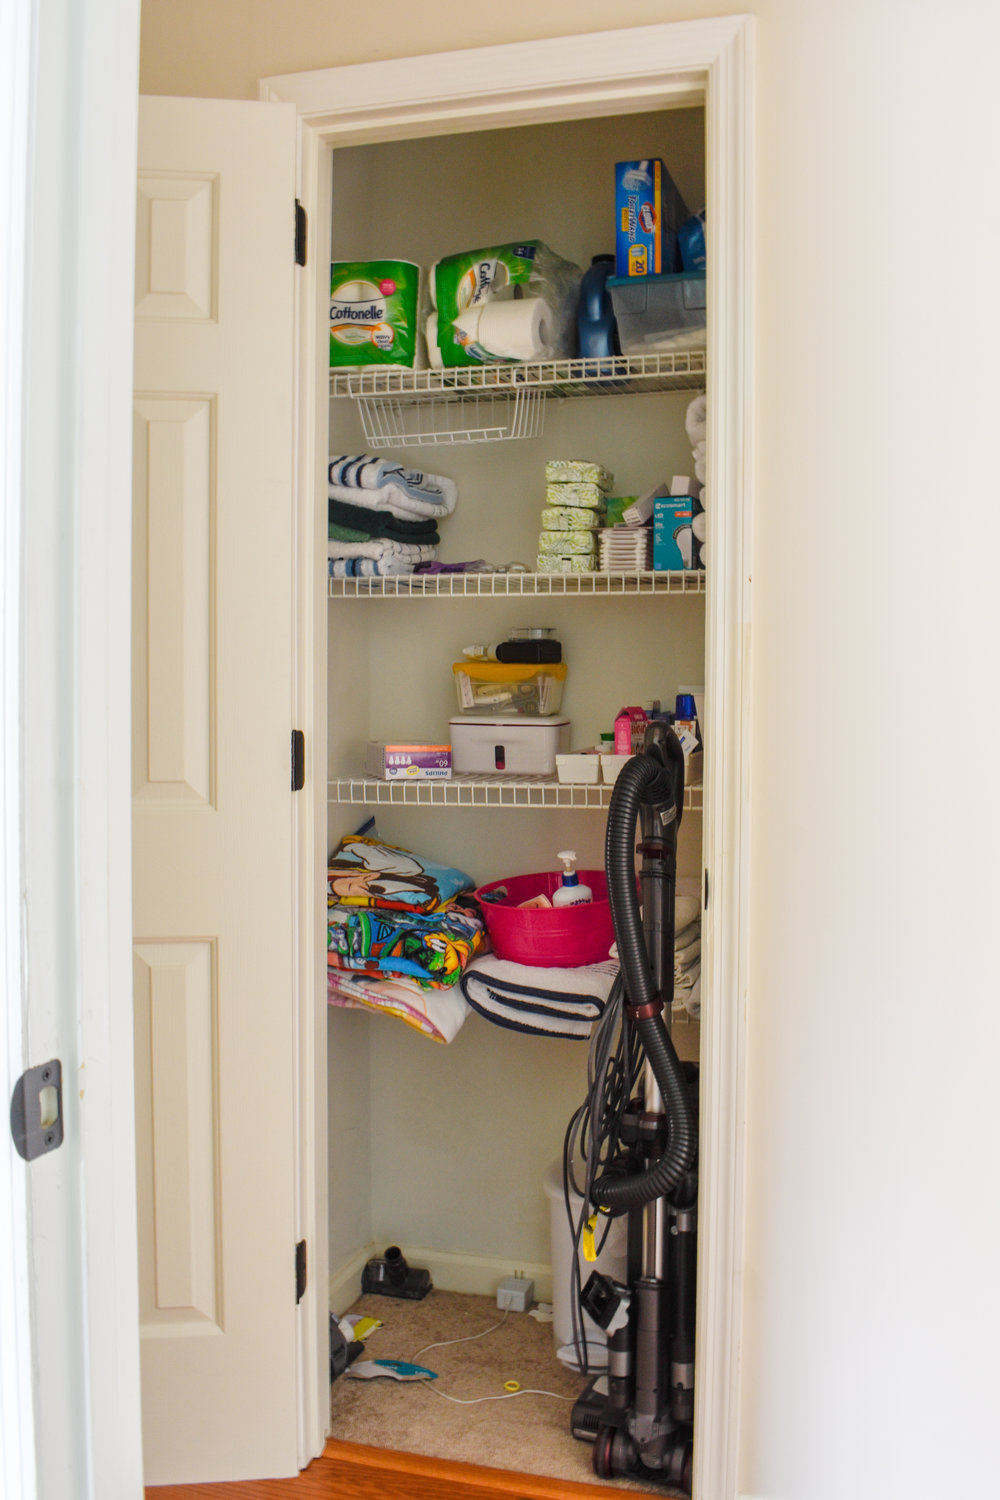 Bathroom Organizing DIY: How To Easily Double The Storage Capacity Under Your Sink For Cheap #organization #diyhacks #bathroomstorage #organizeit #springcleaning